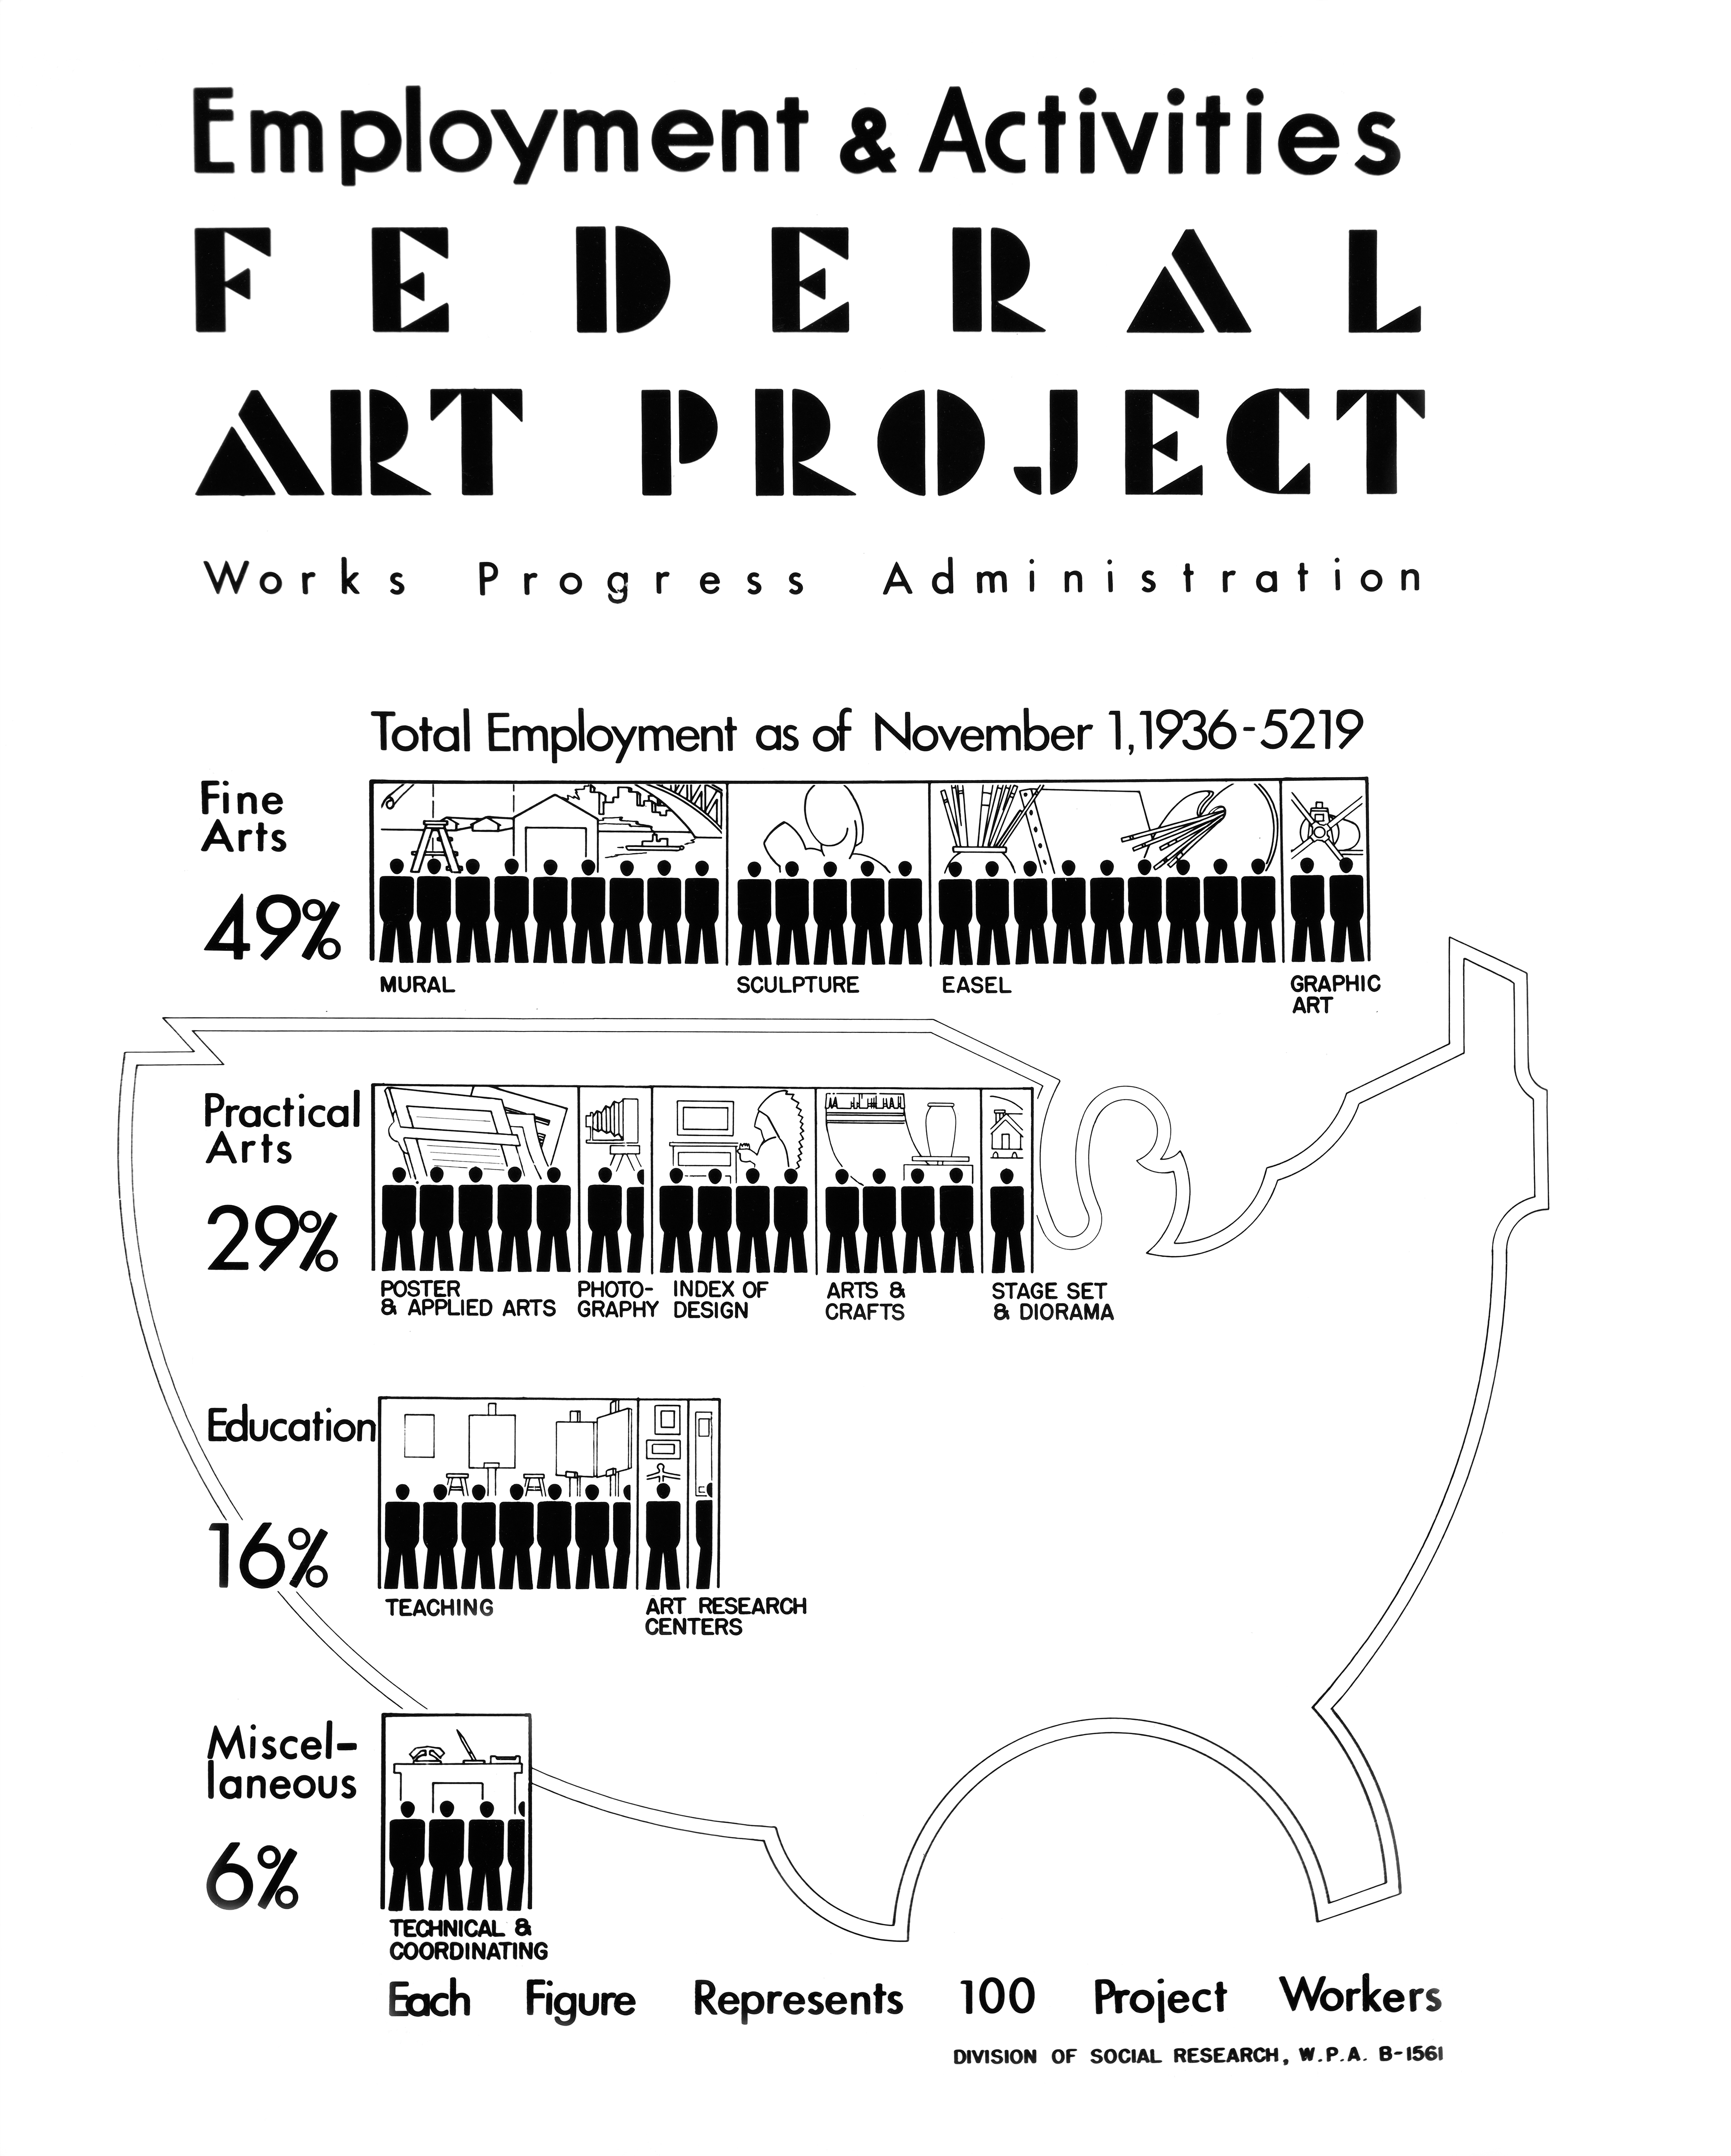 Augusta Savage Federal Art Project